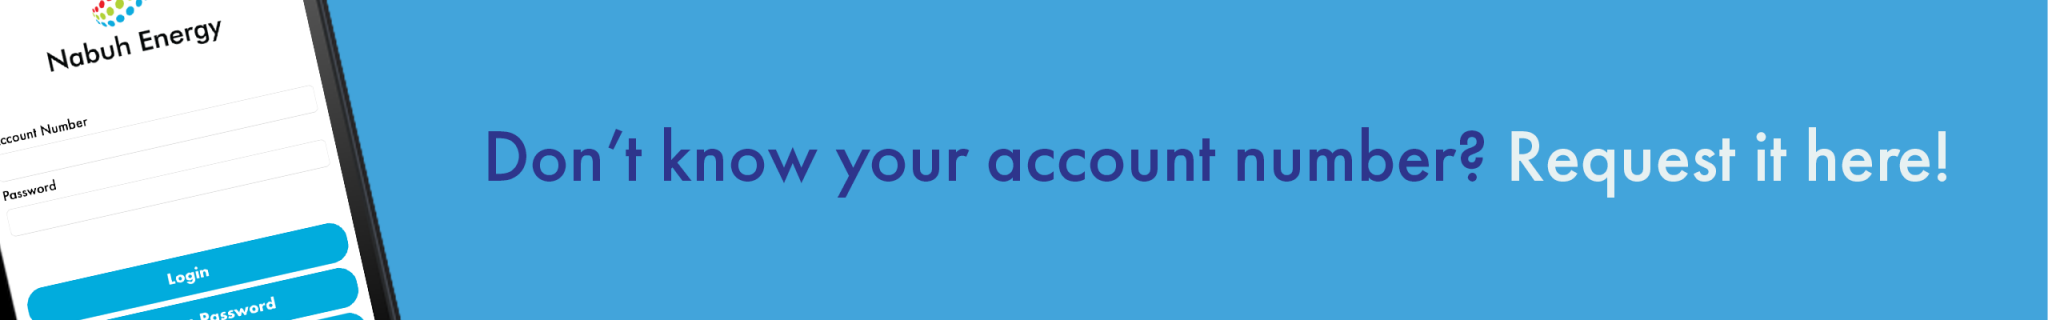 Don't know your account number? Request it here!